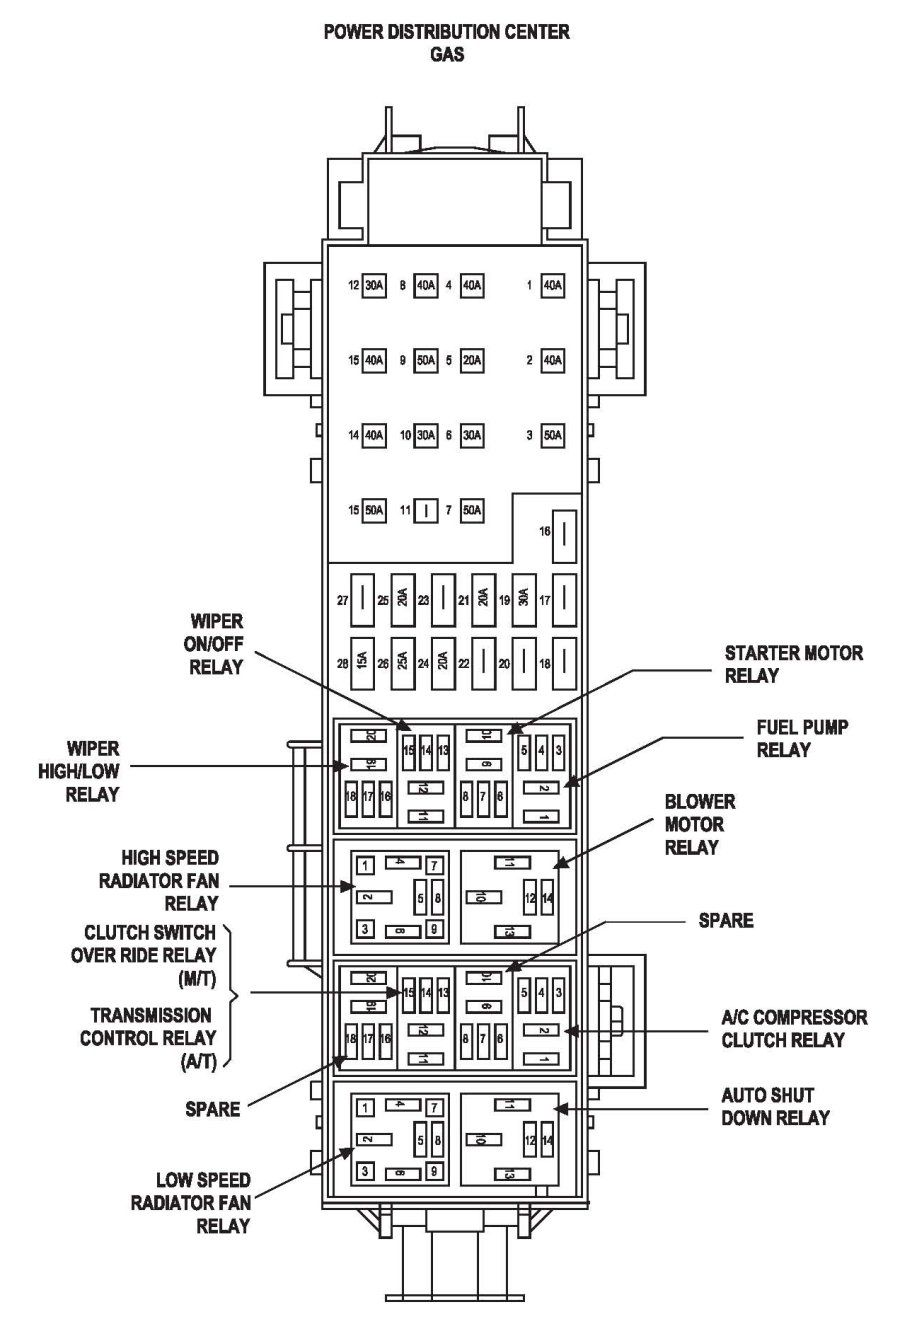 hight resolution of jeep liberty fuse box diagram image details